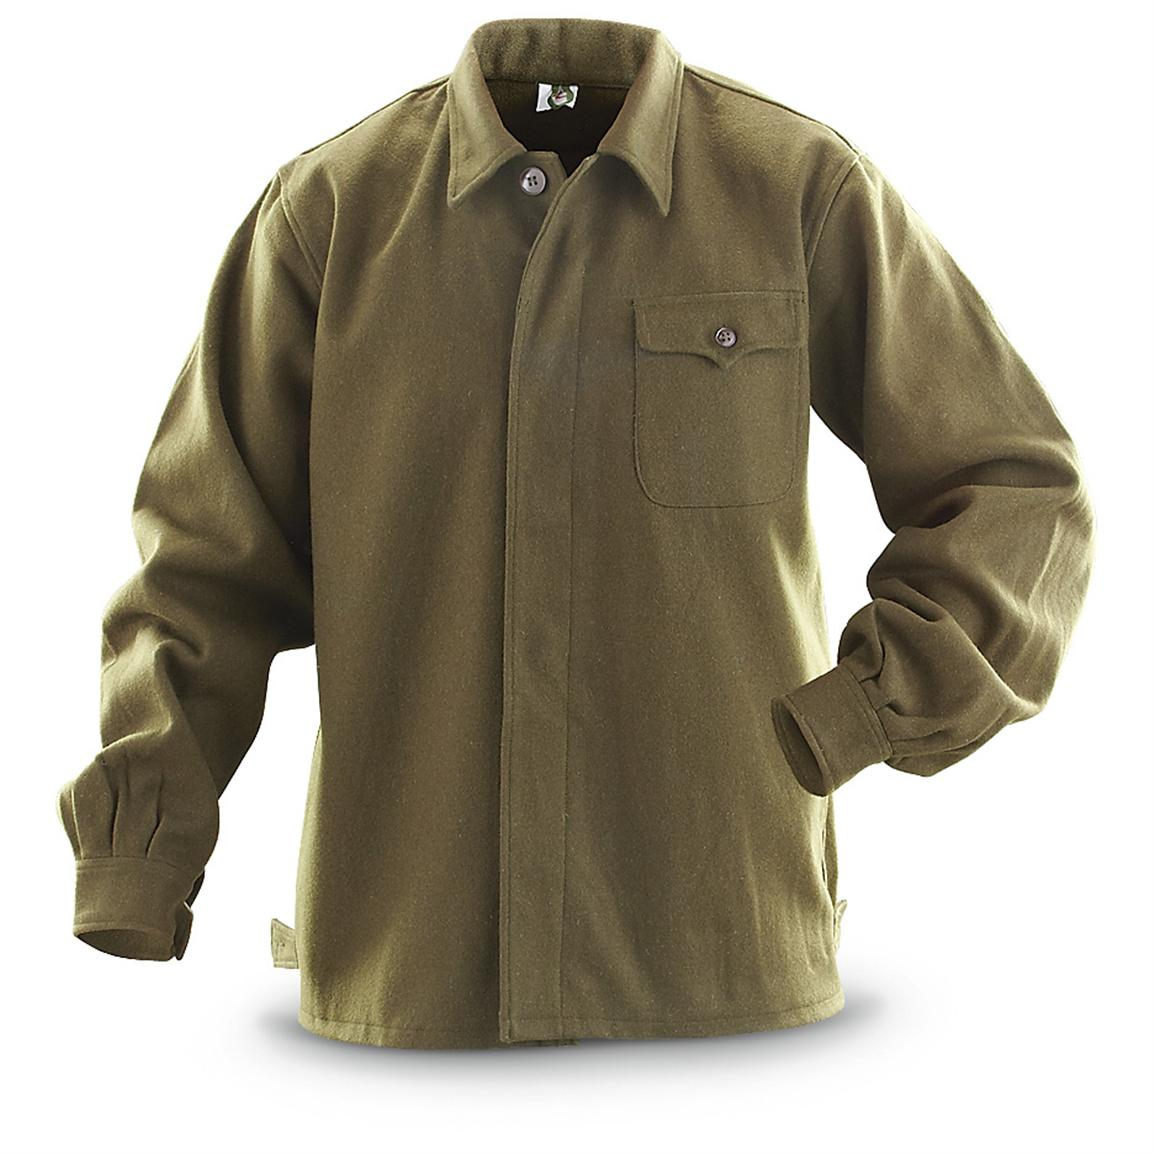 Military-style Wool Field Shirt, Hunter Green